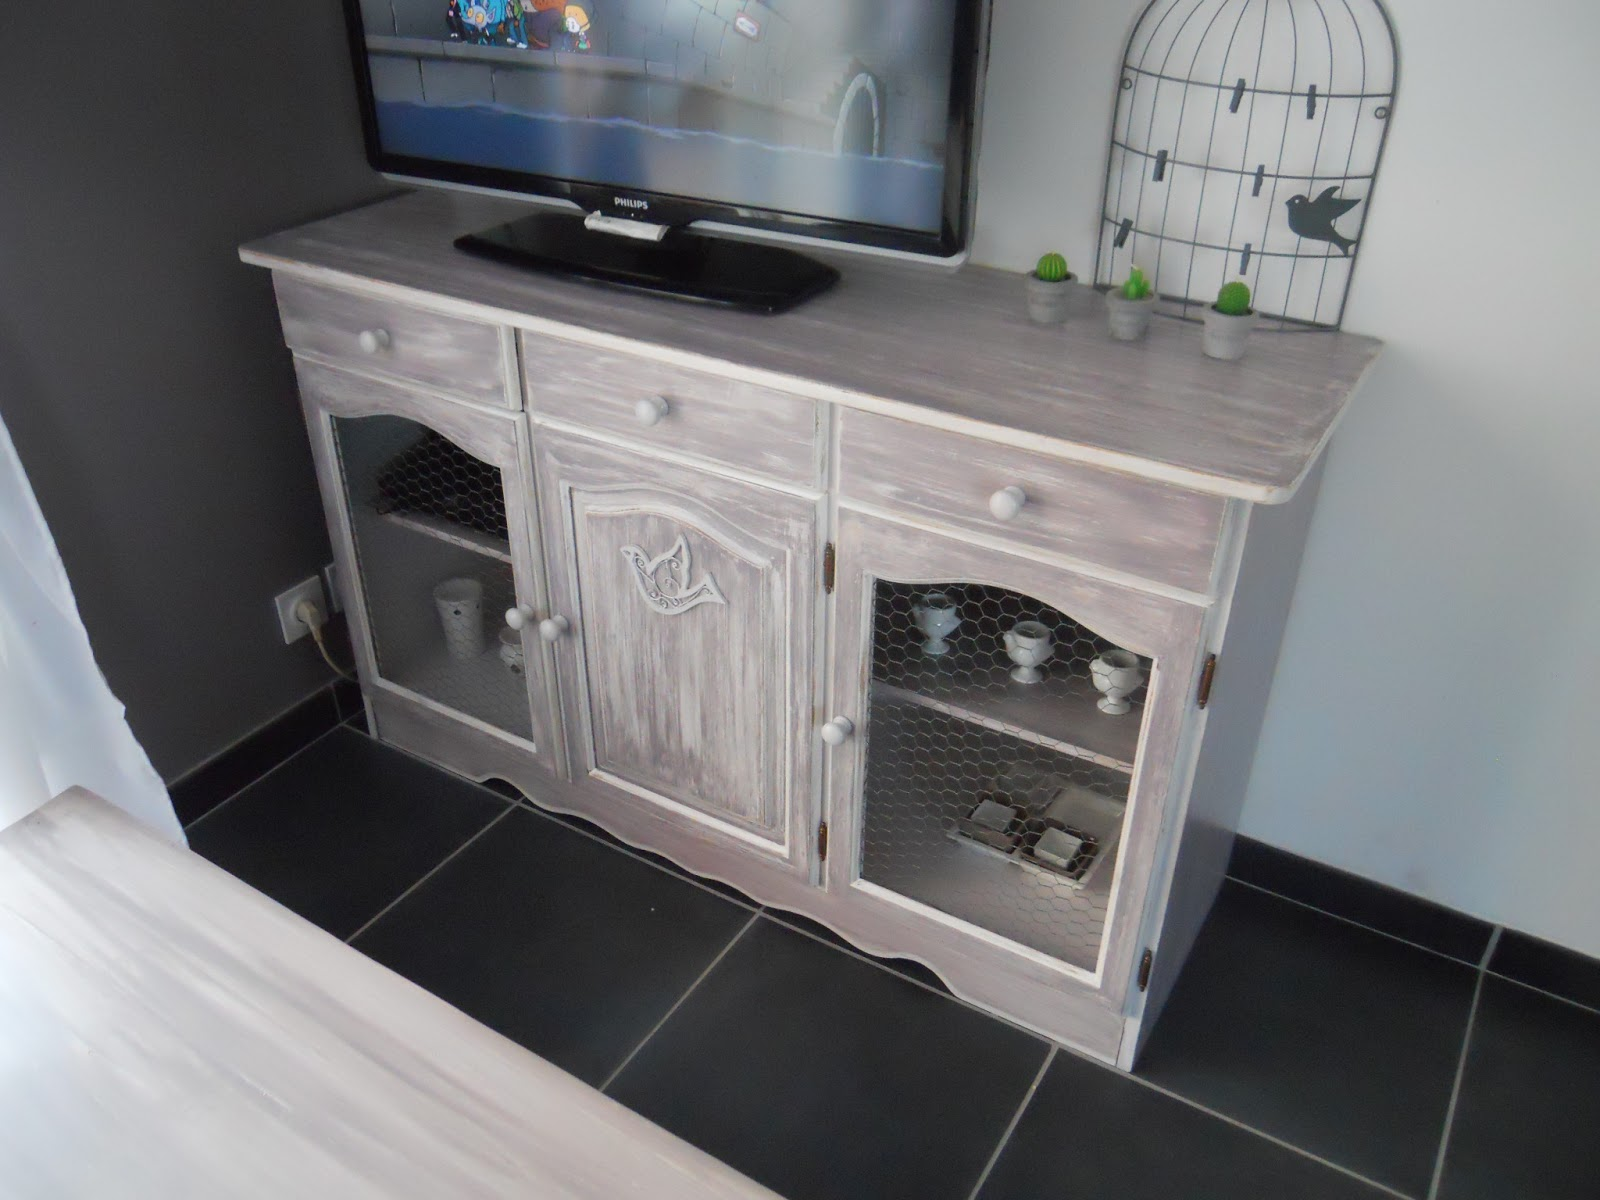 Meubles d co buffet en pin relook en meuble tv - Meuble tv relooke ...